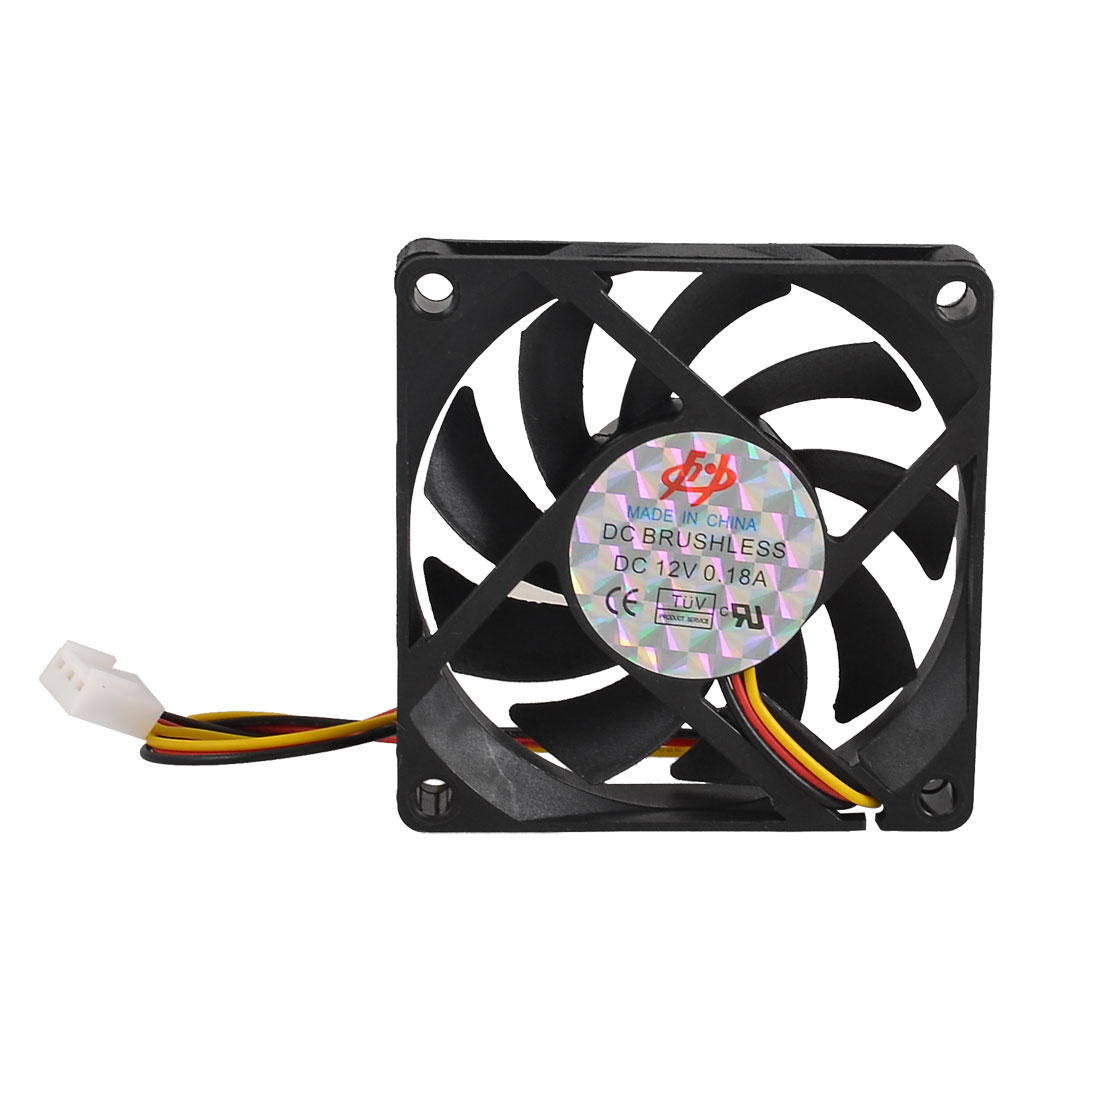 Black Computer CPU 3 Pole Connector Heatsink Square Cooler Fan